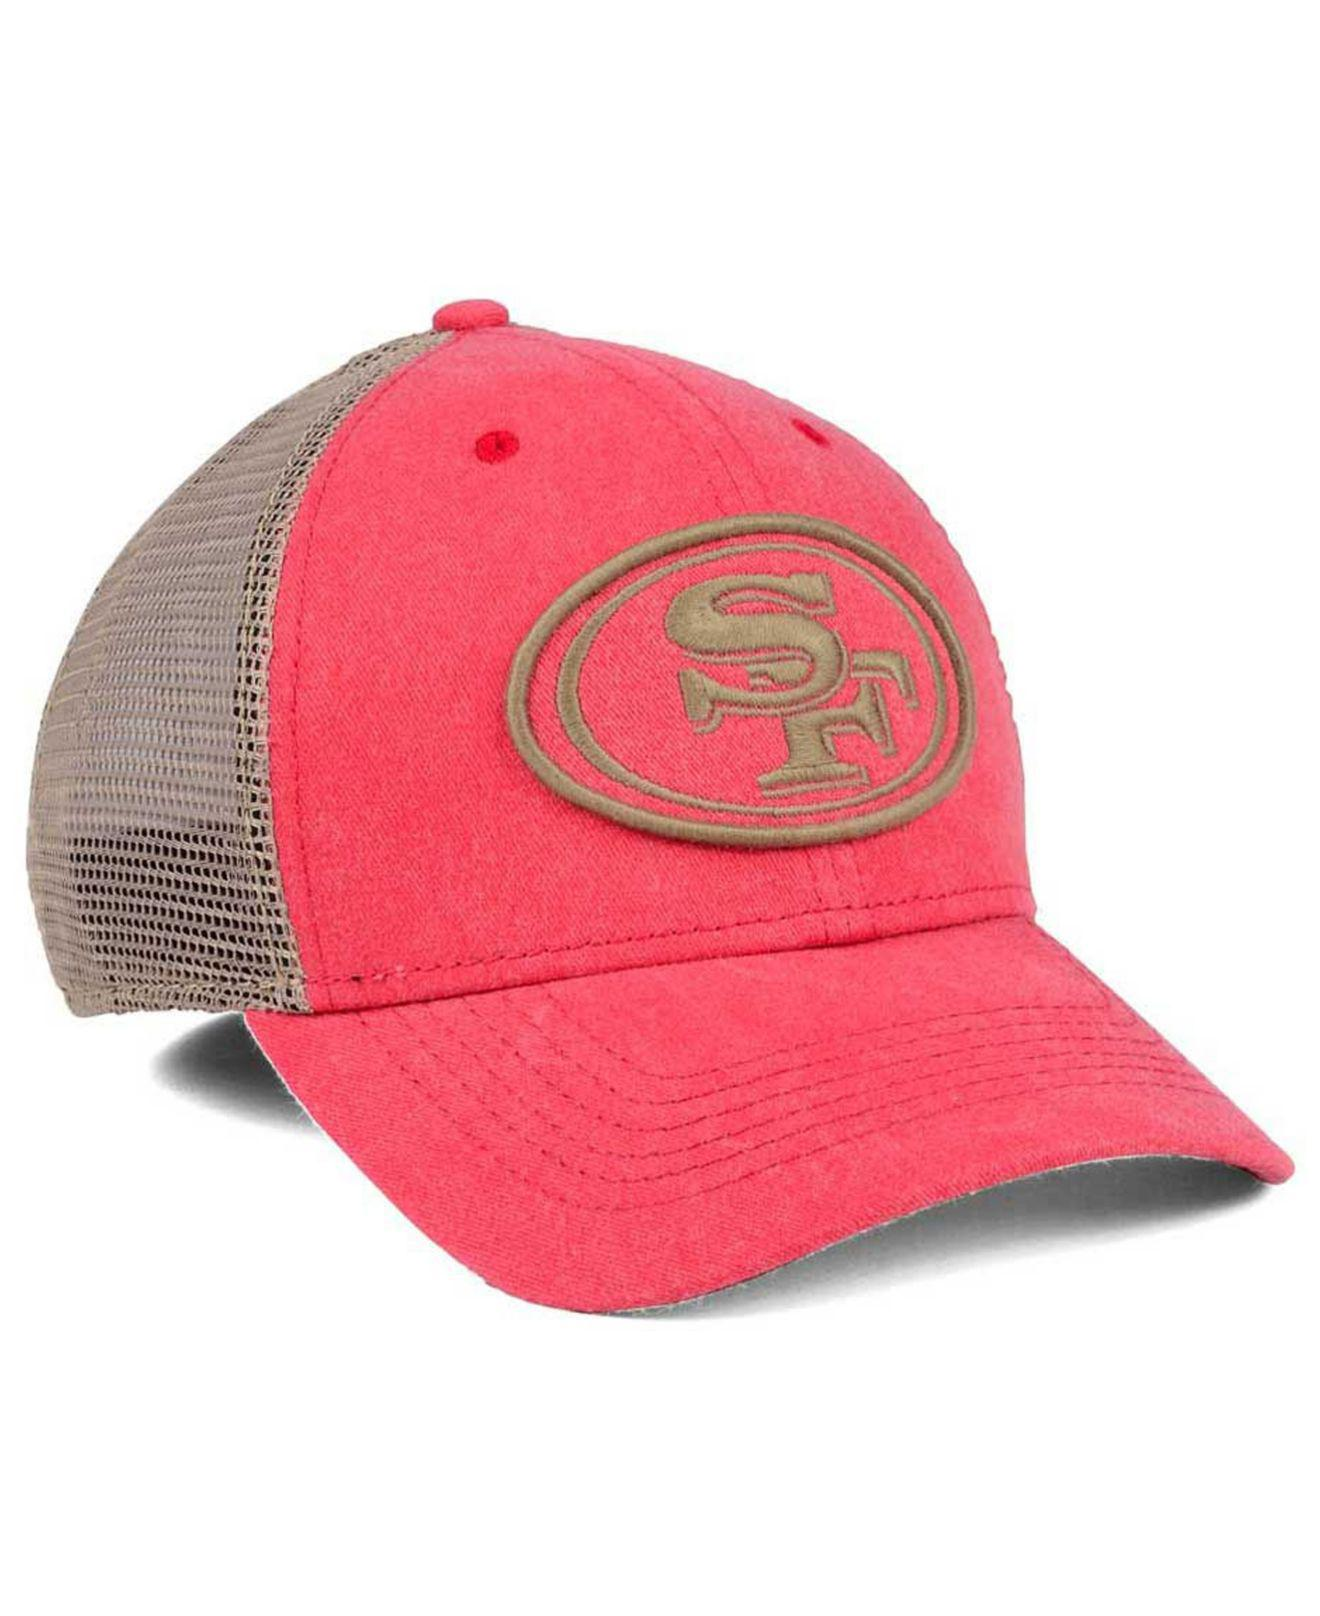 new arrival 47a6f dba6f ... good reduced cleveland browns 47 nfl 47 mvp cap 6d071 53a7d new zealand  summerland contender flex